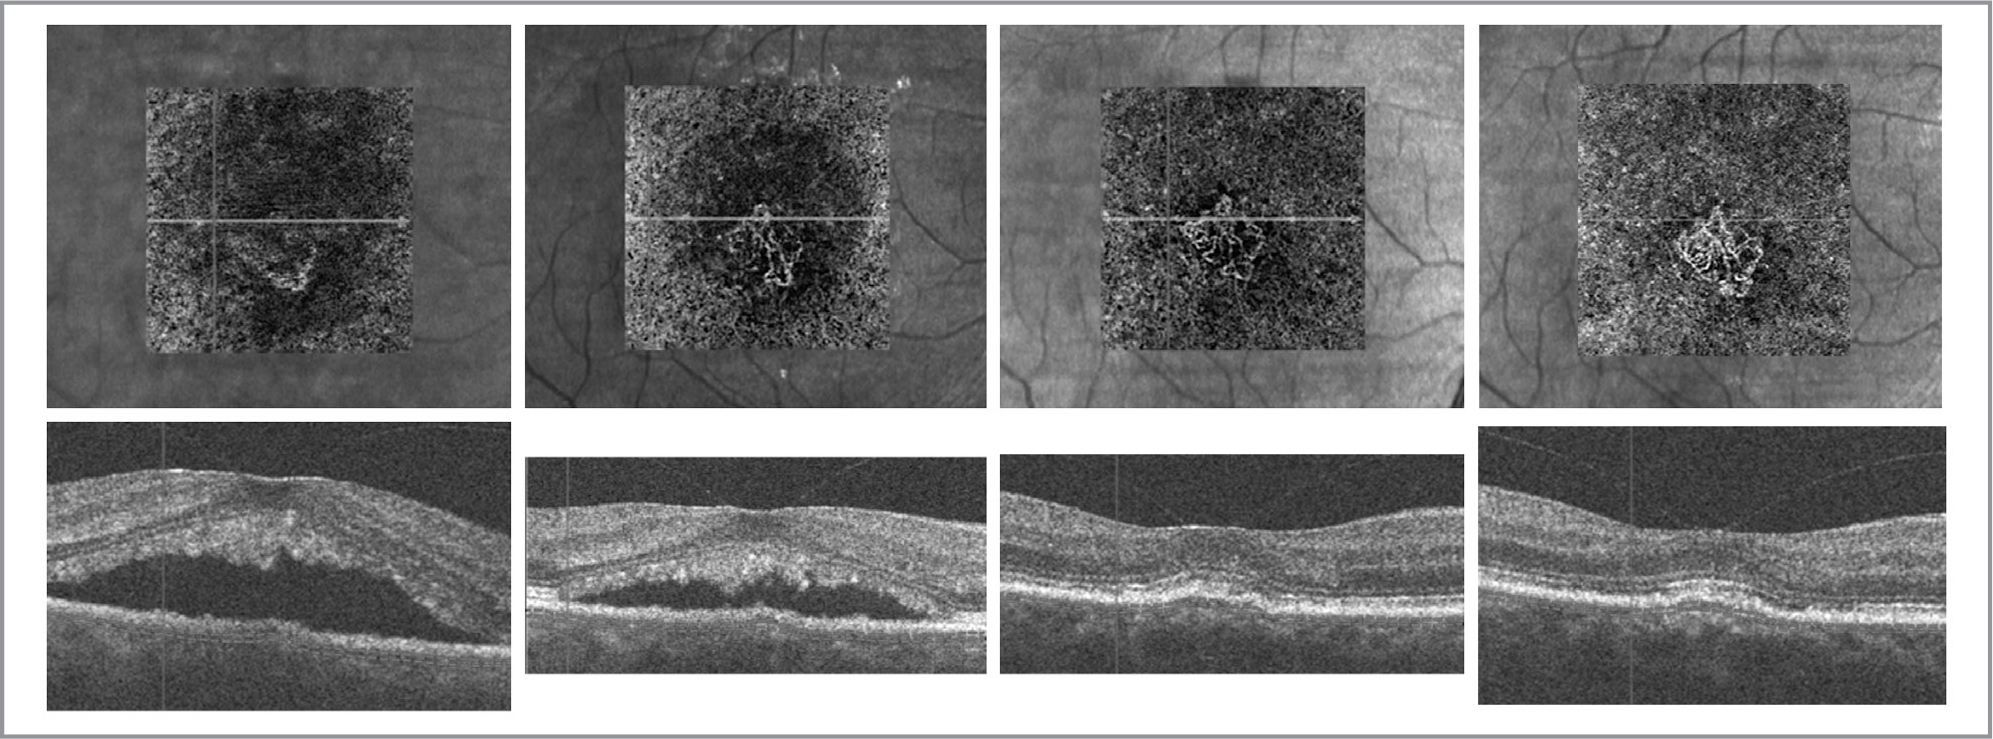 Choroidal neovascular membrane (CNVM) in chronic central serous chorioretinopathy. First column: En face optical coherence tomography angiography (OCTA) immediately prior to half-fluence photodynamic therapy (PDT) with segmentation through the choriocapillaris, demonstrating evidence of a tangled vascular network consistent with a CNVM (top). Relative signal void likely due to projection artifact from overlying serous retinal detachment evident on the structural OCT (bottom). Second column: OCTA 2 weeks after PDT with more clearly defined CNVM and decreased flow void (top) with a corresponding decrease in subretinal fluid (bottom). Third column: OCTA 2 months after PDT demonstrating increasing size of CNVM (top) with complete resolution of subretinal fluid and retinal pigment epithelial detachment (bottom). Fourth column: OCTA 11 months after PDT demonstrating further increase in size of CNVM (top) with no exudative changes noted on structural OCT (bottom).